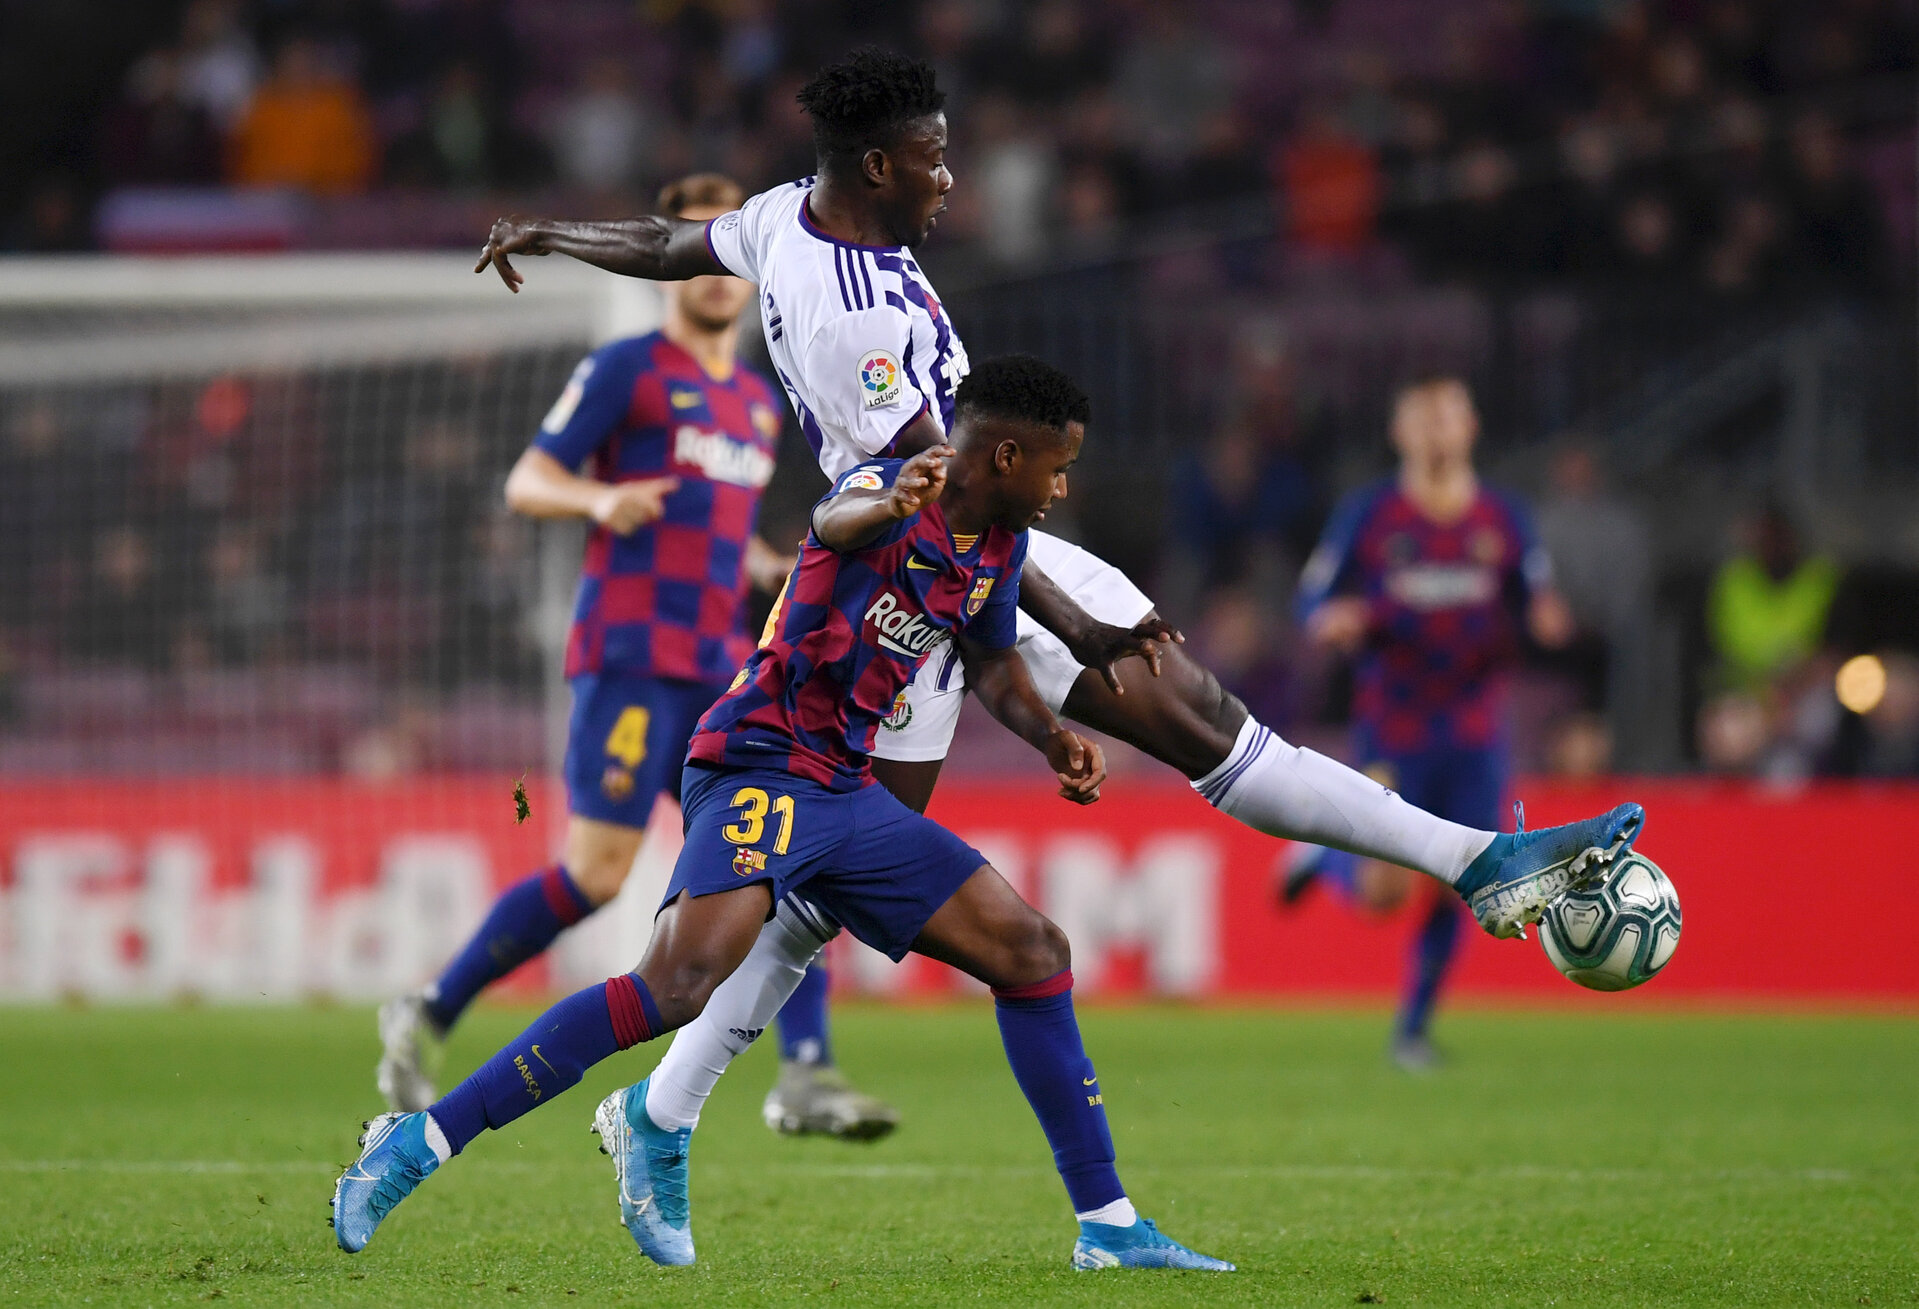 BARCELONA, SPAIN - OCTOBER 29: Mohammed Salisu of Valladolid is challenged by Anssumane Fati of FC Barcelona during the Liga match between FC Barcelona and Real Valladolid CF at Camp Nou on October 29, 2019 in Barcelona, Spain. (Photo by Alex Caparros/Getty Images)